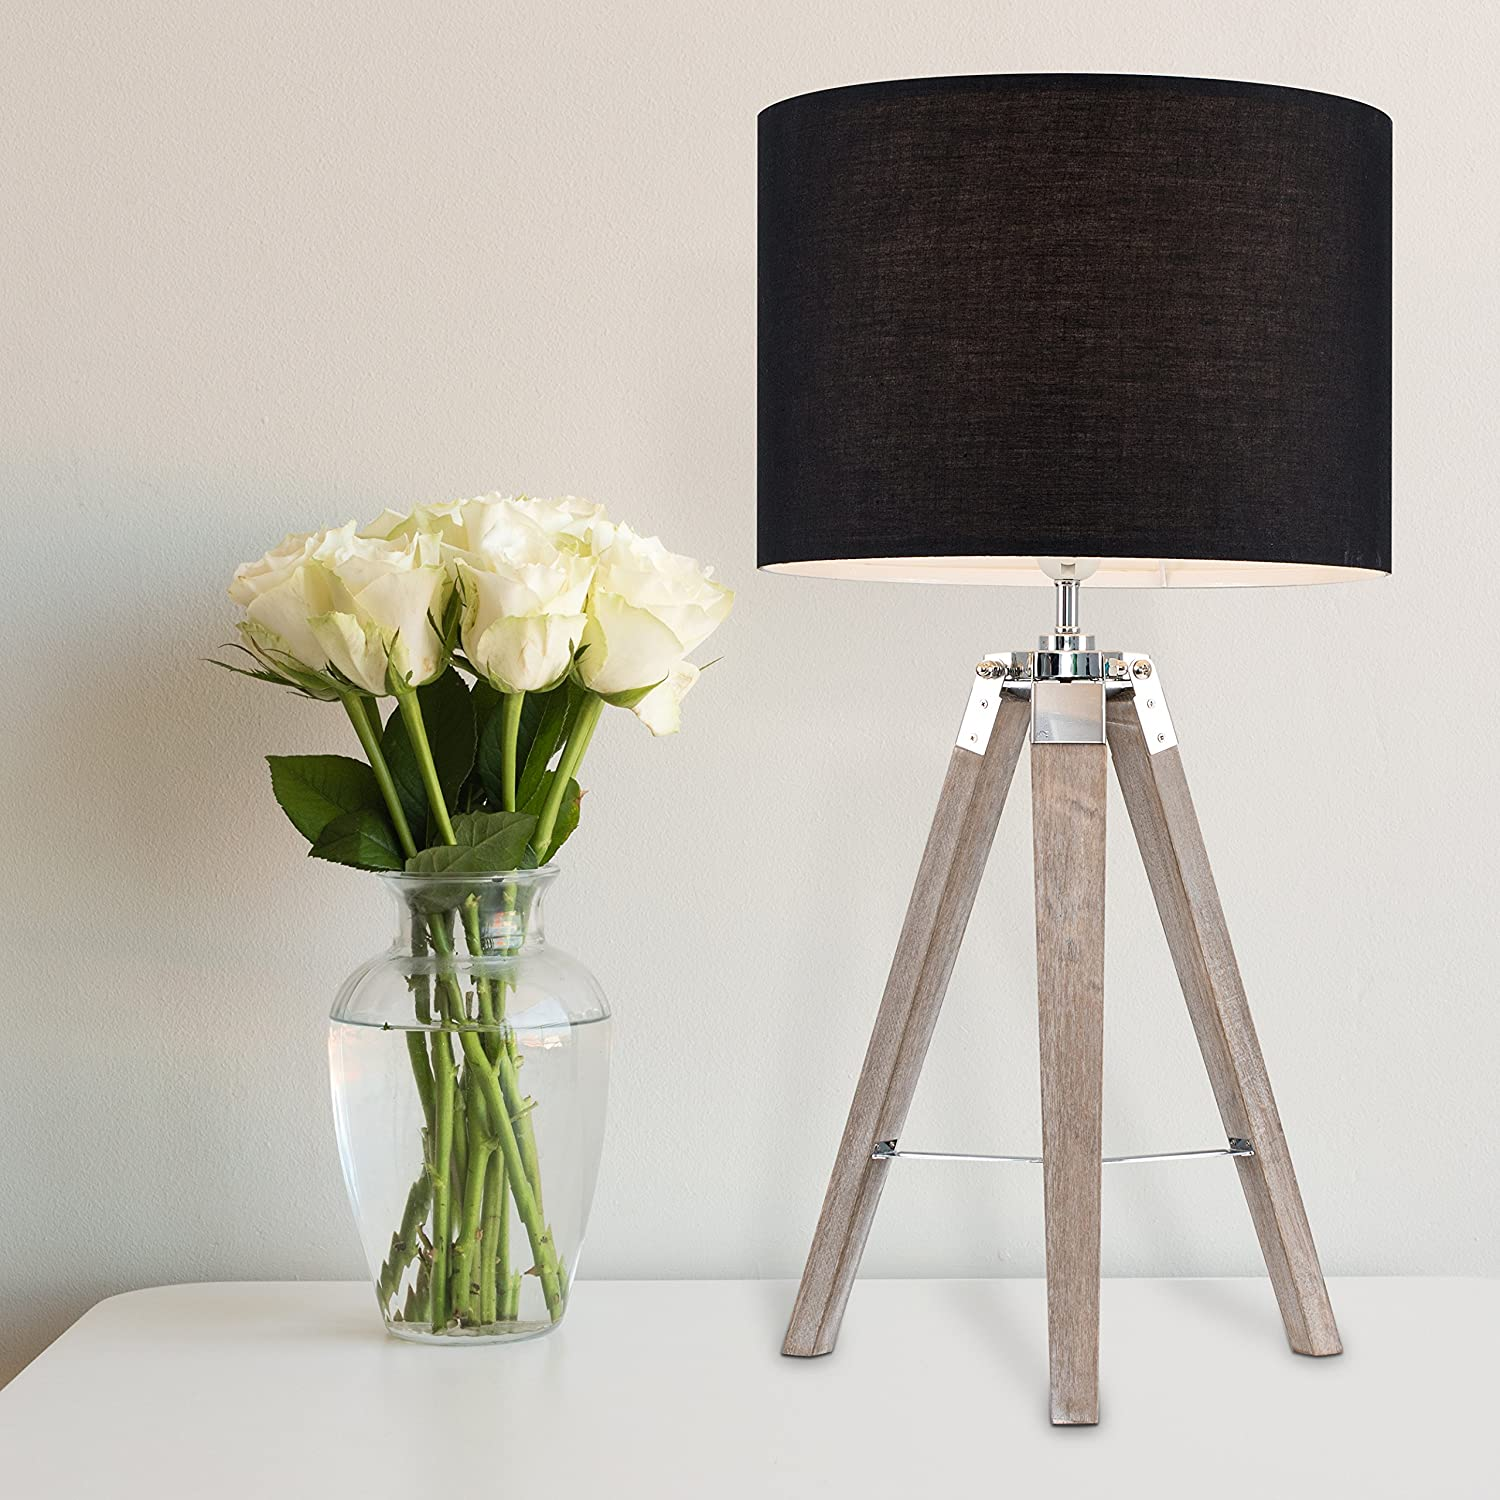 Complete with a 6w LED GLS Bulb 3000K Warm White Modern Distressed Wood and Silver Chrome Tripod Table Lamp with a Grey Cylinder Light Shade